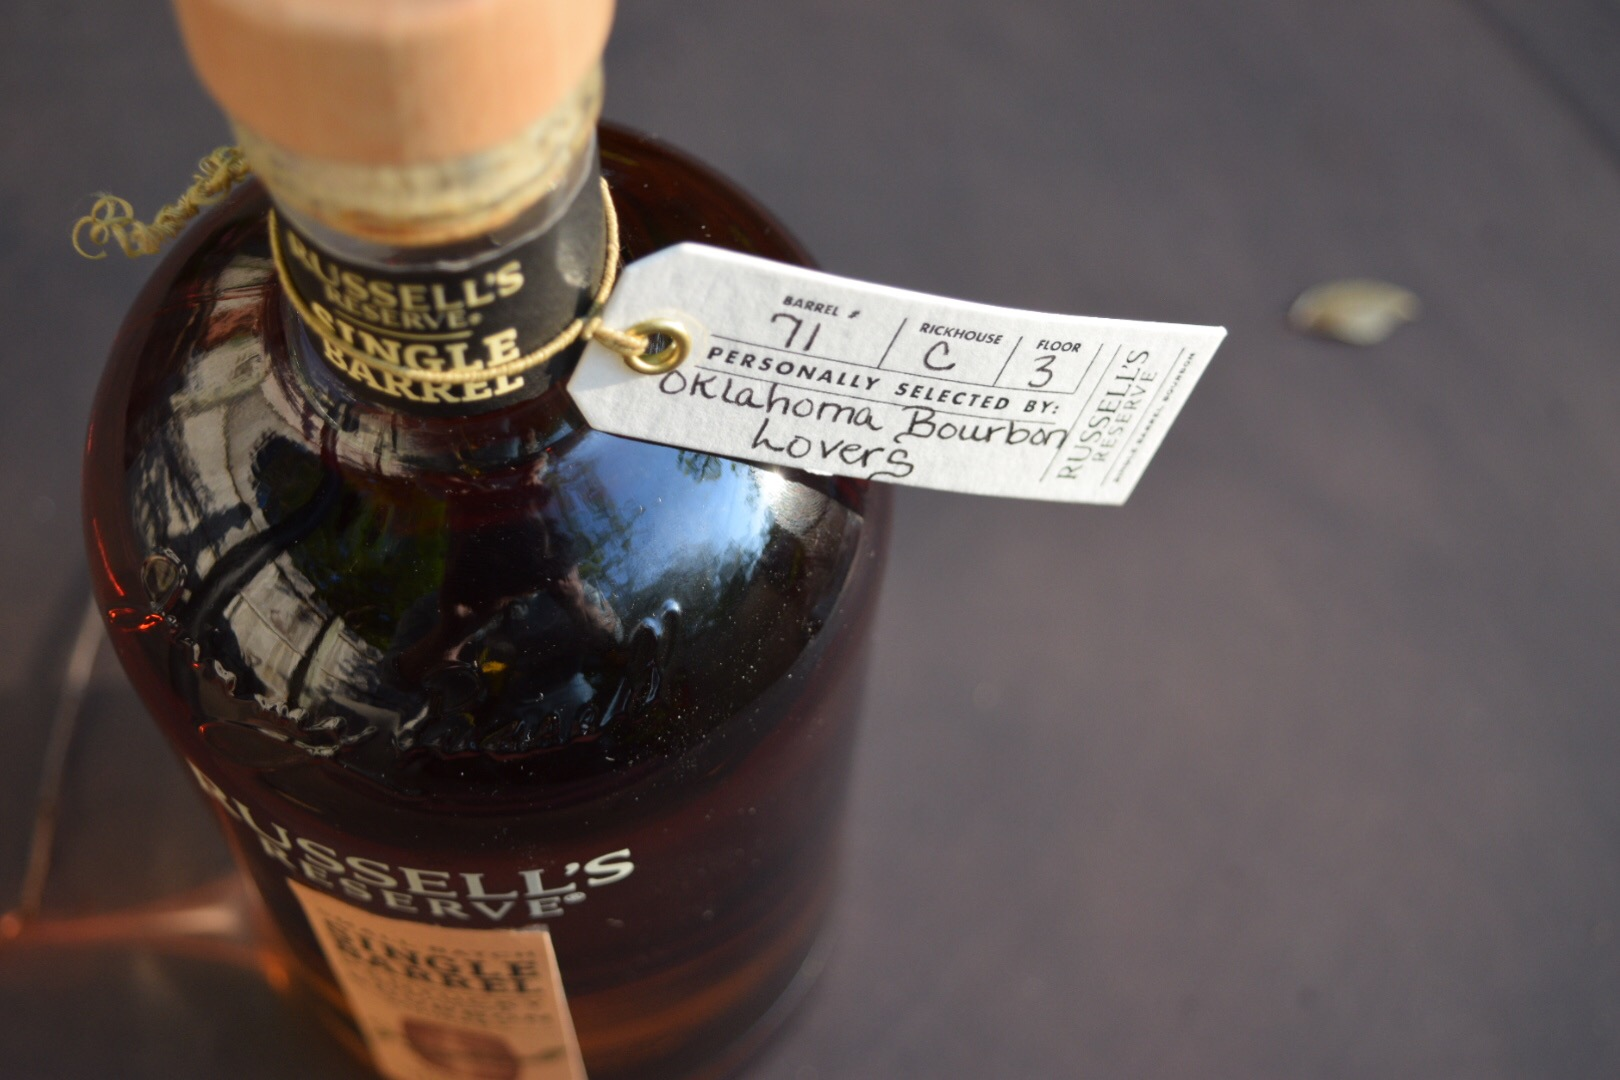 russels_reserve_oklahoma_tag